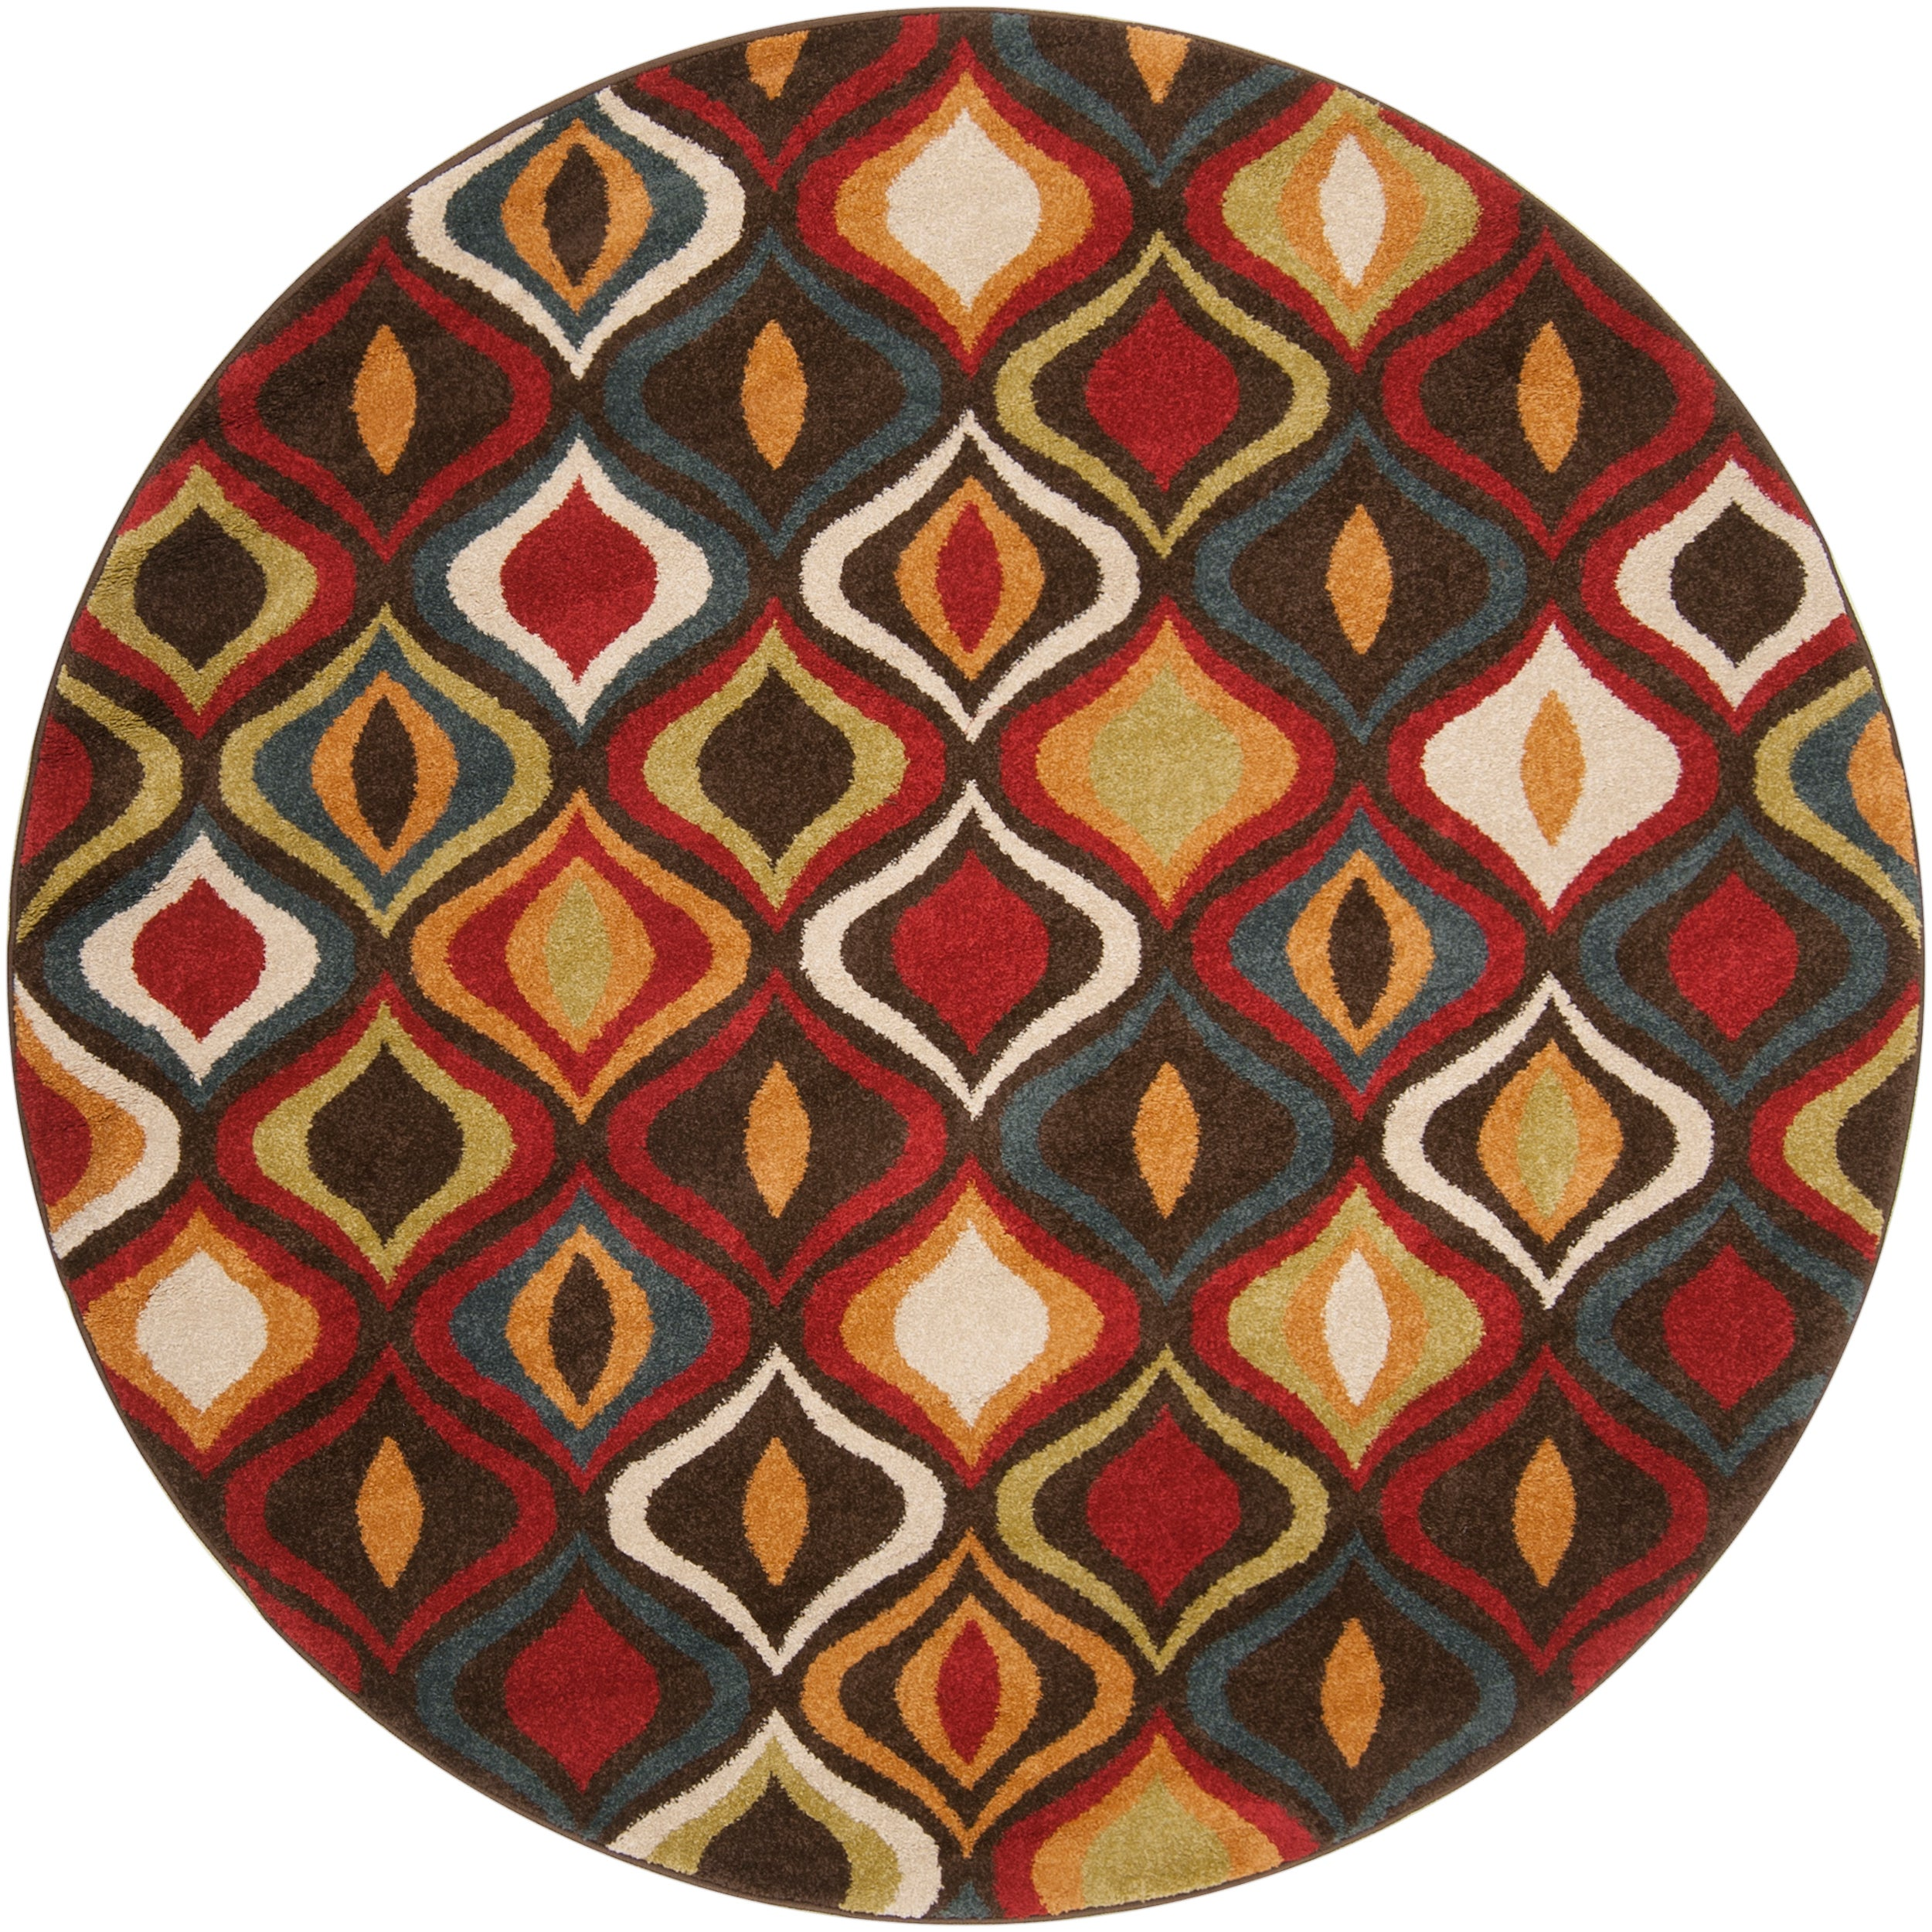 Meticulously Woven Contemporary Red/Brown Medallion Katell Abstract Rug (6'7 Round)